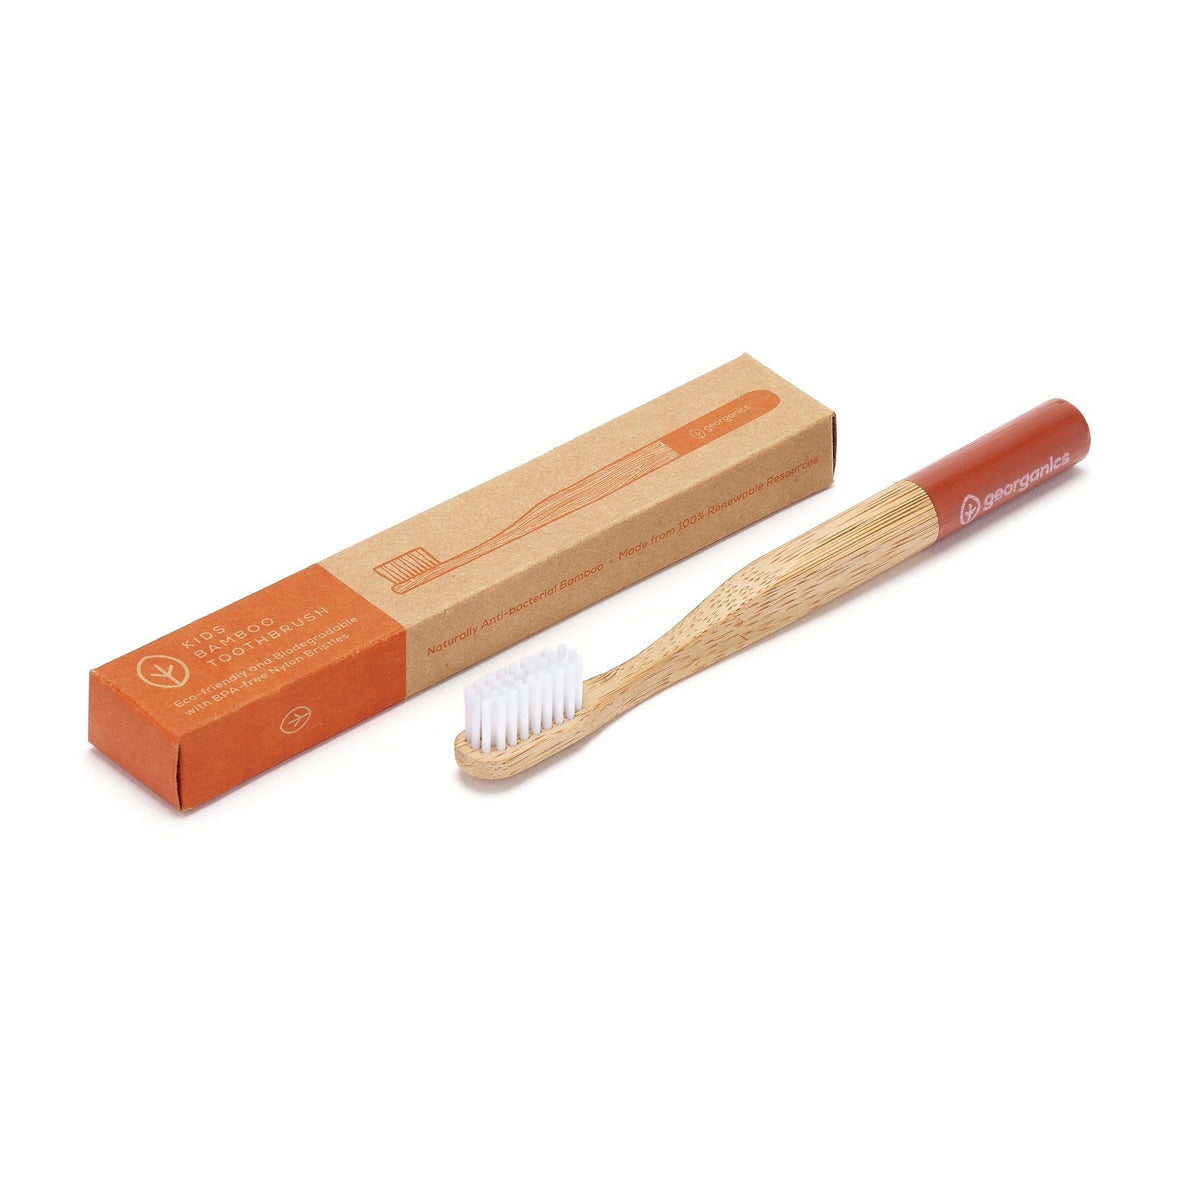 Bamboo Toothbrush (3 Varianten) Zahnpflege Georganics - Genuine Selection